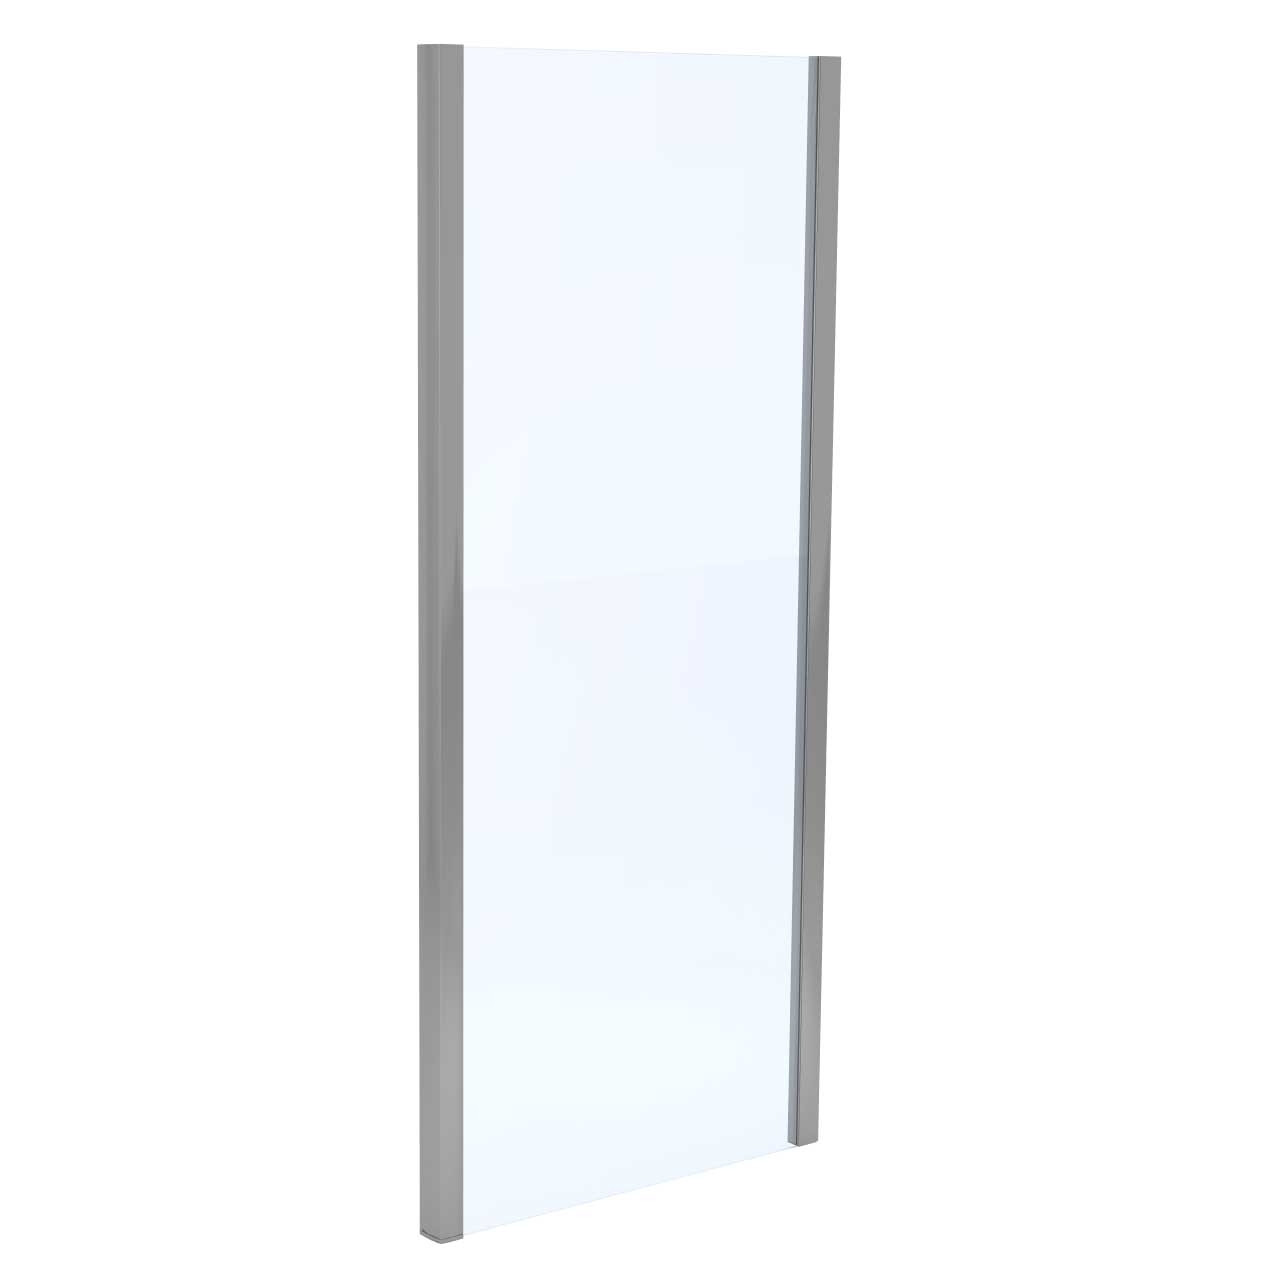 Series 8 1200 x 800 Sliding Door Enclosure